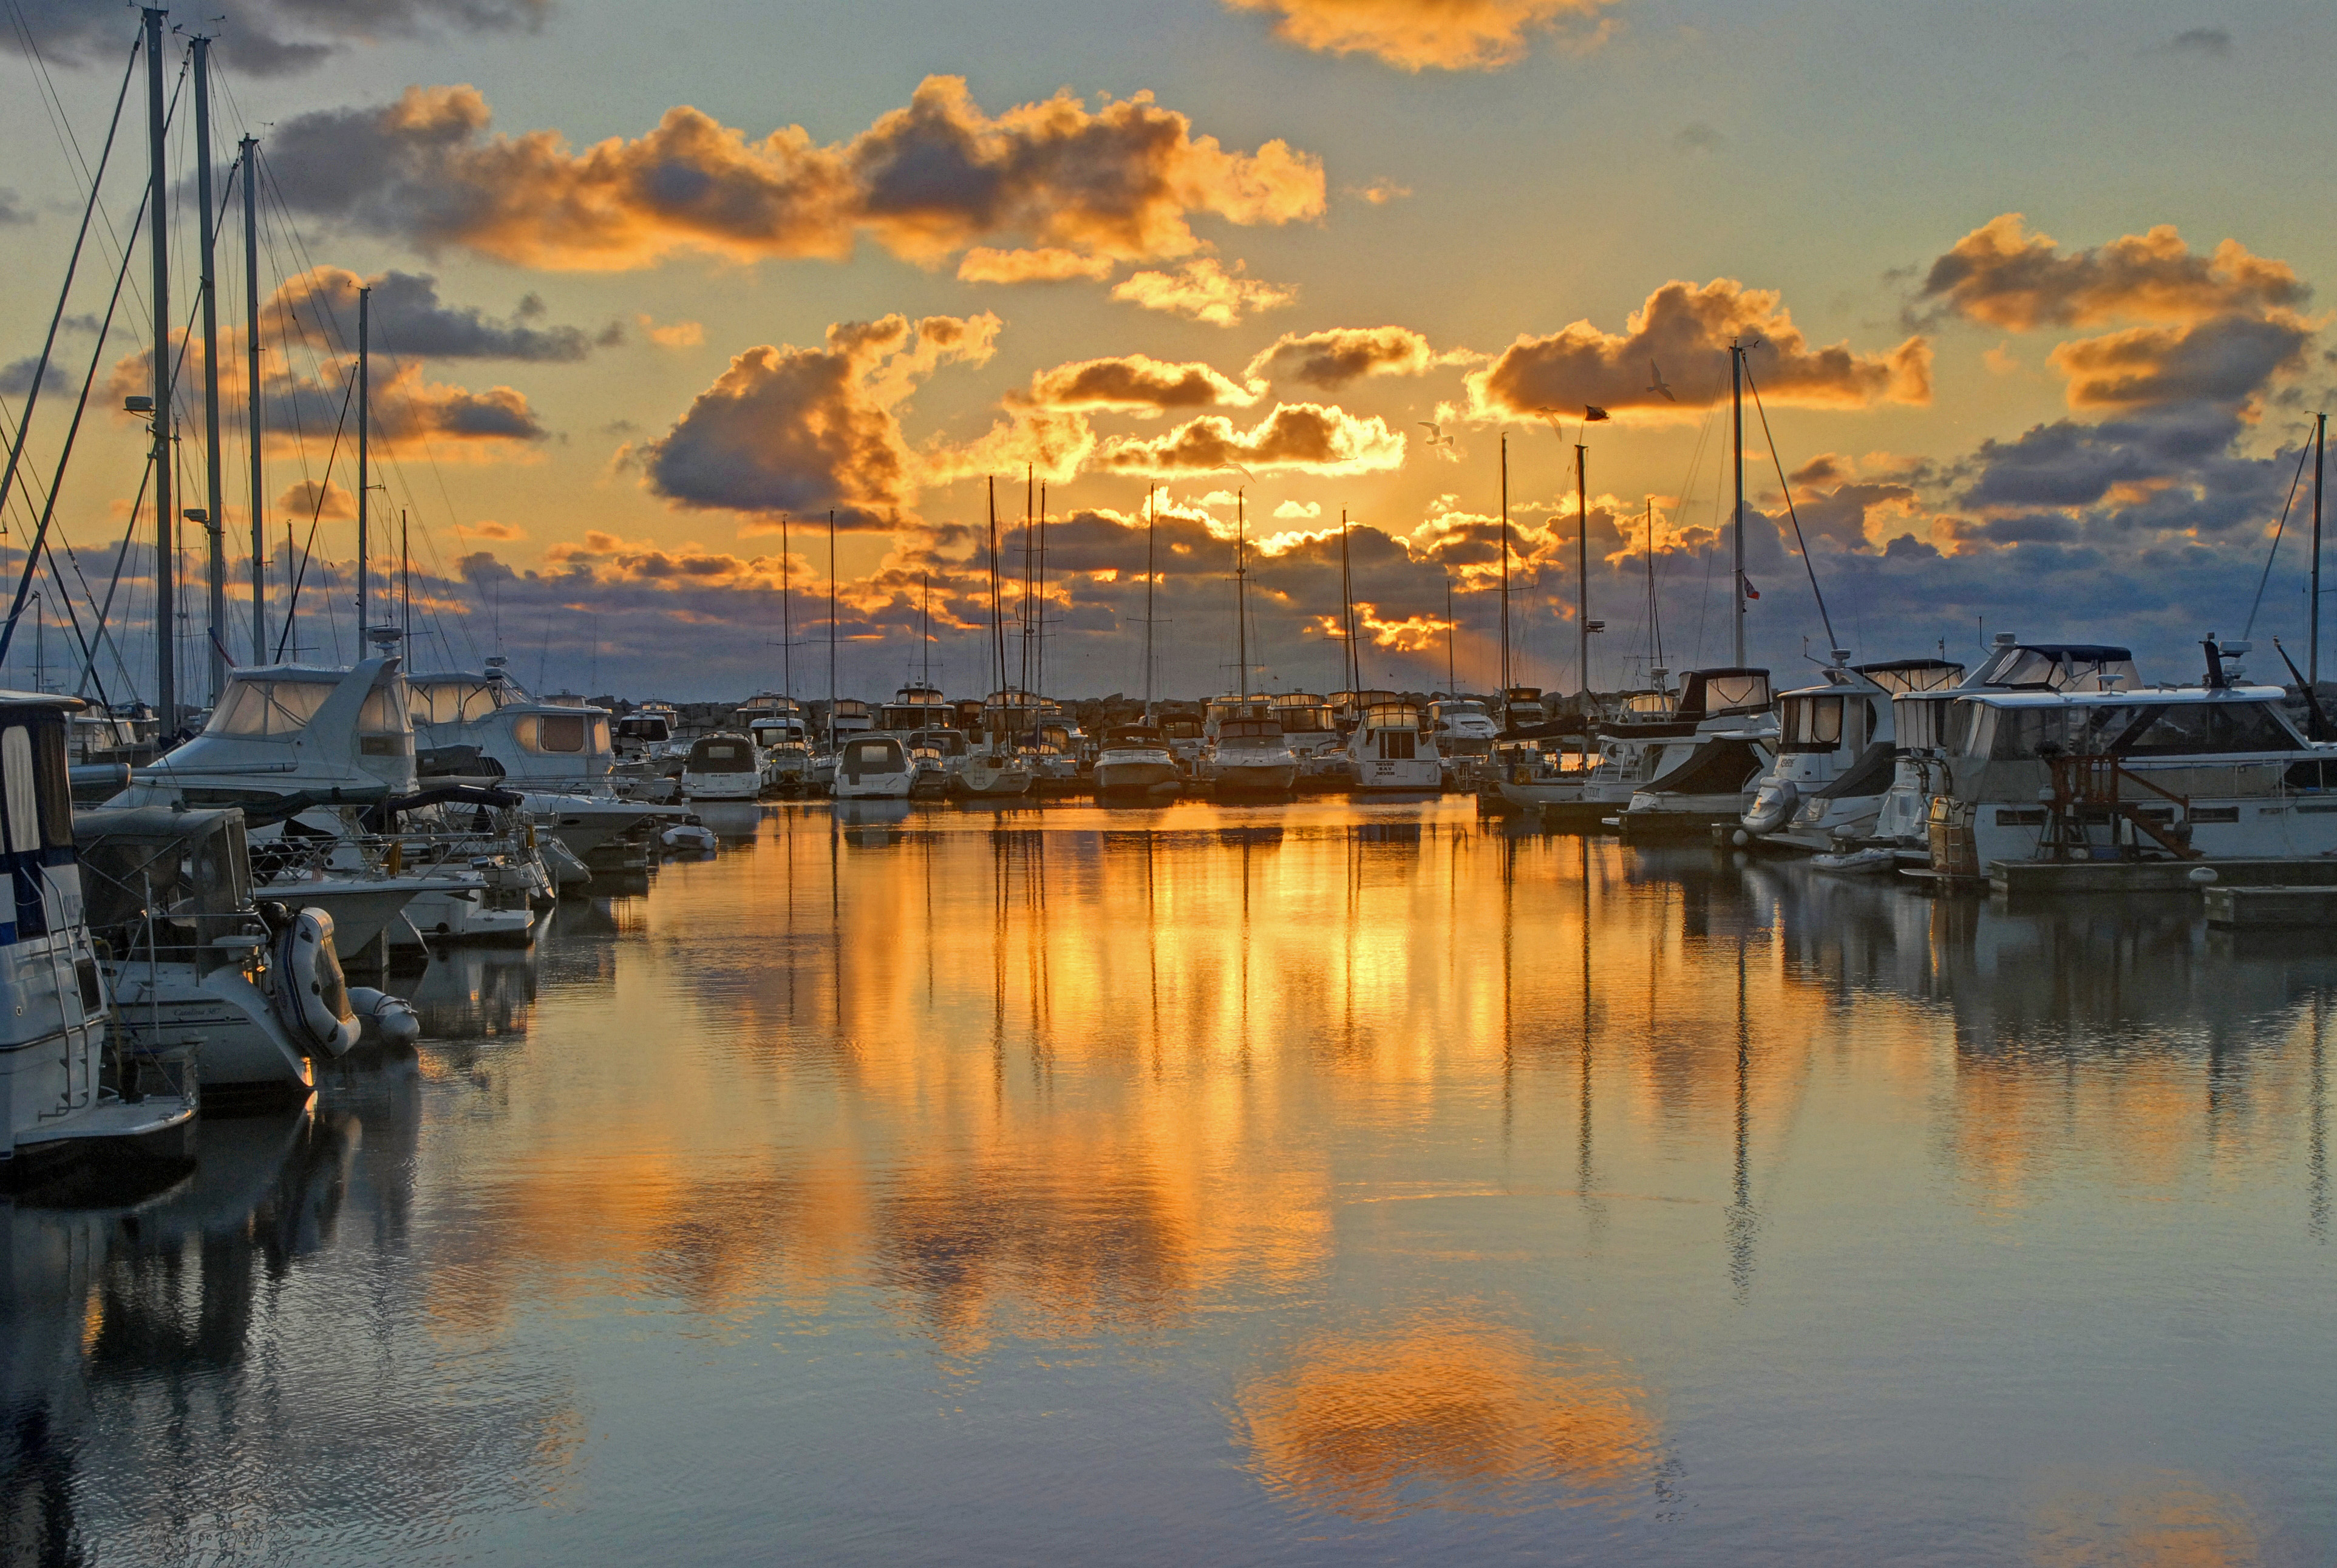 A Visitors guide to Southport Marina